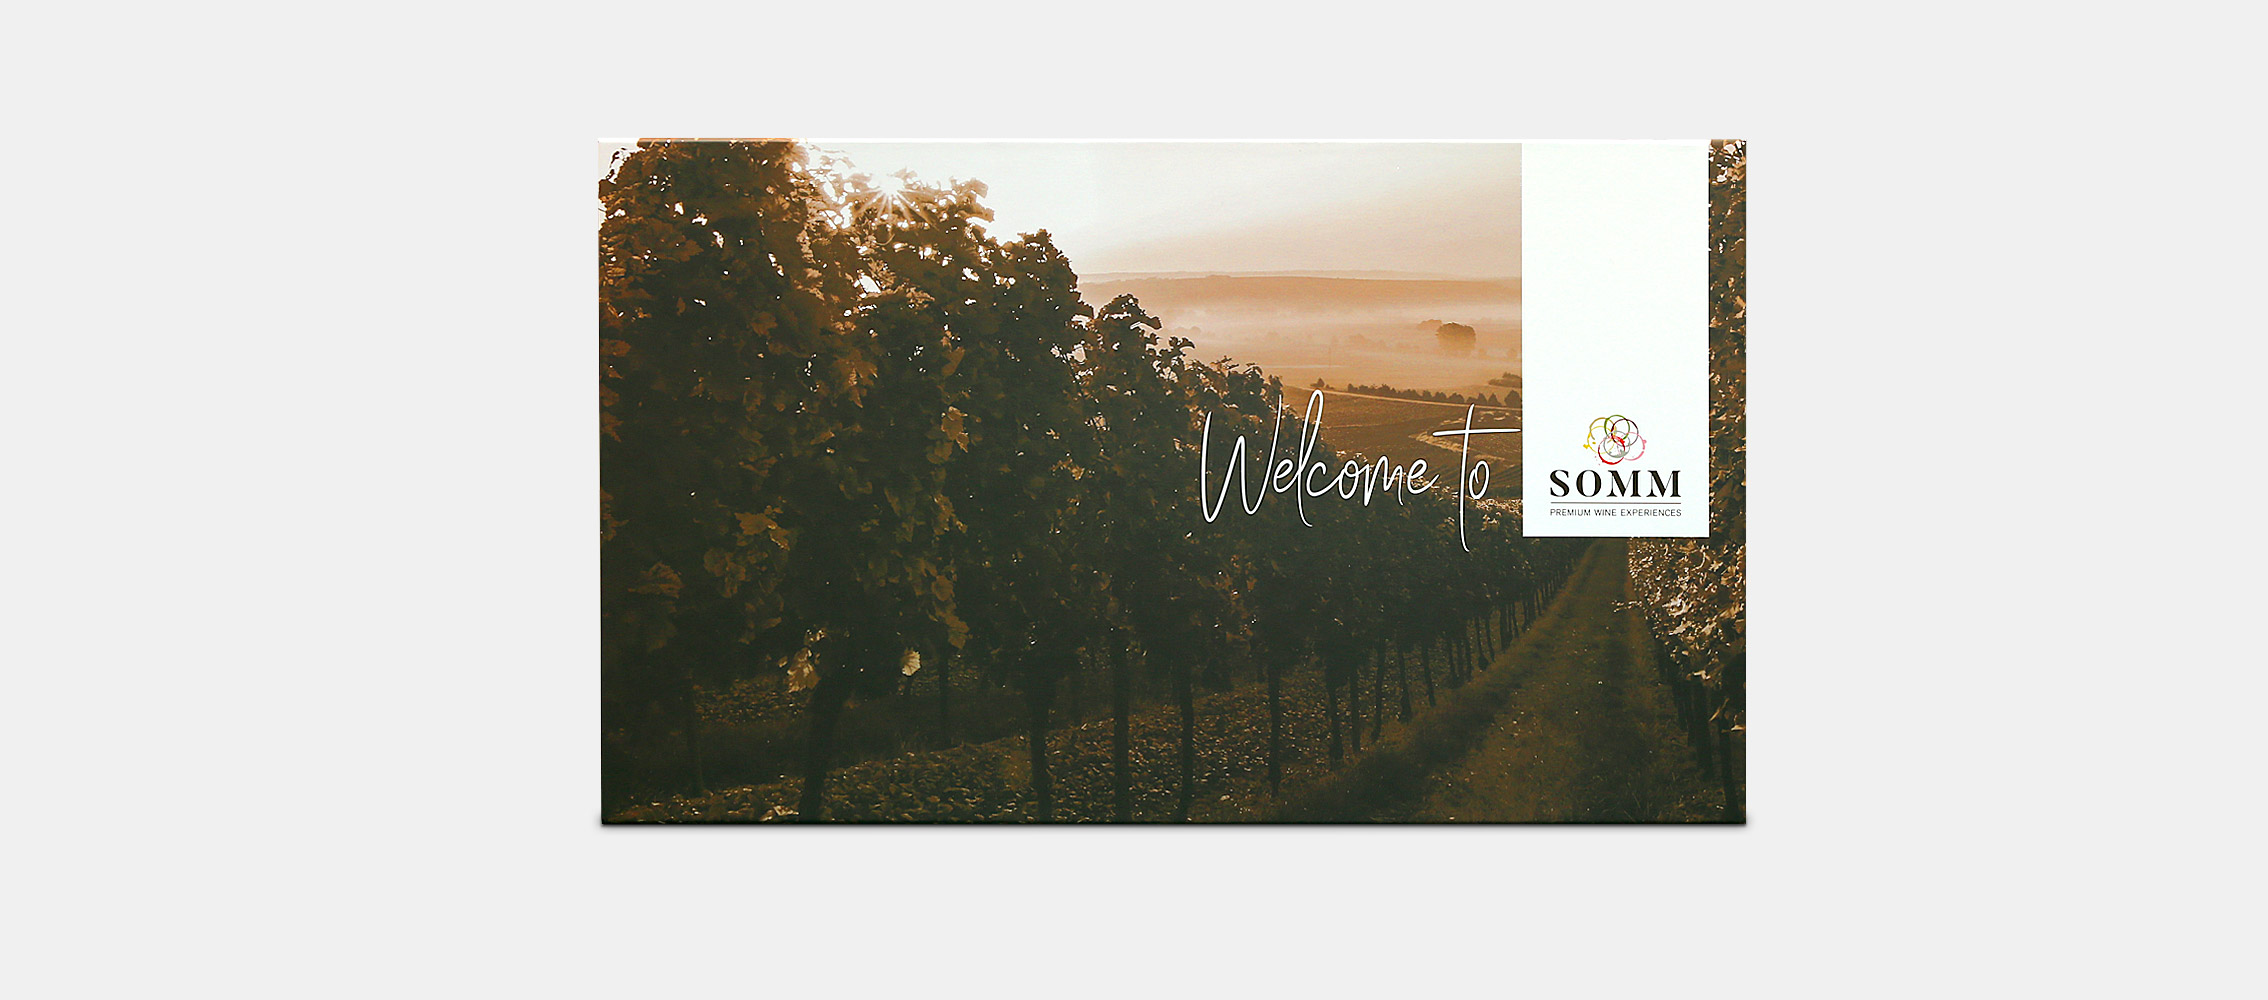 SOMM Outer Box Design